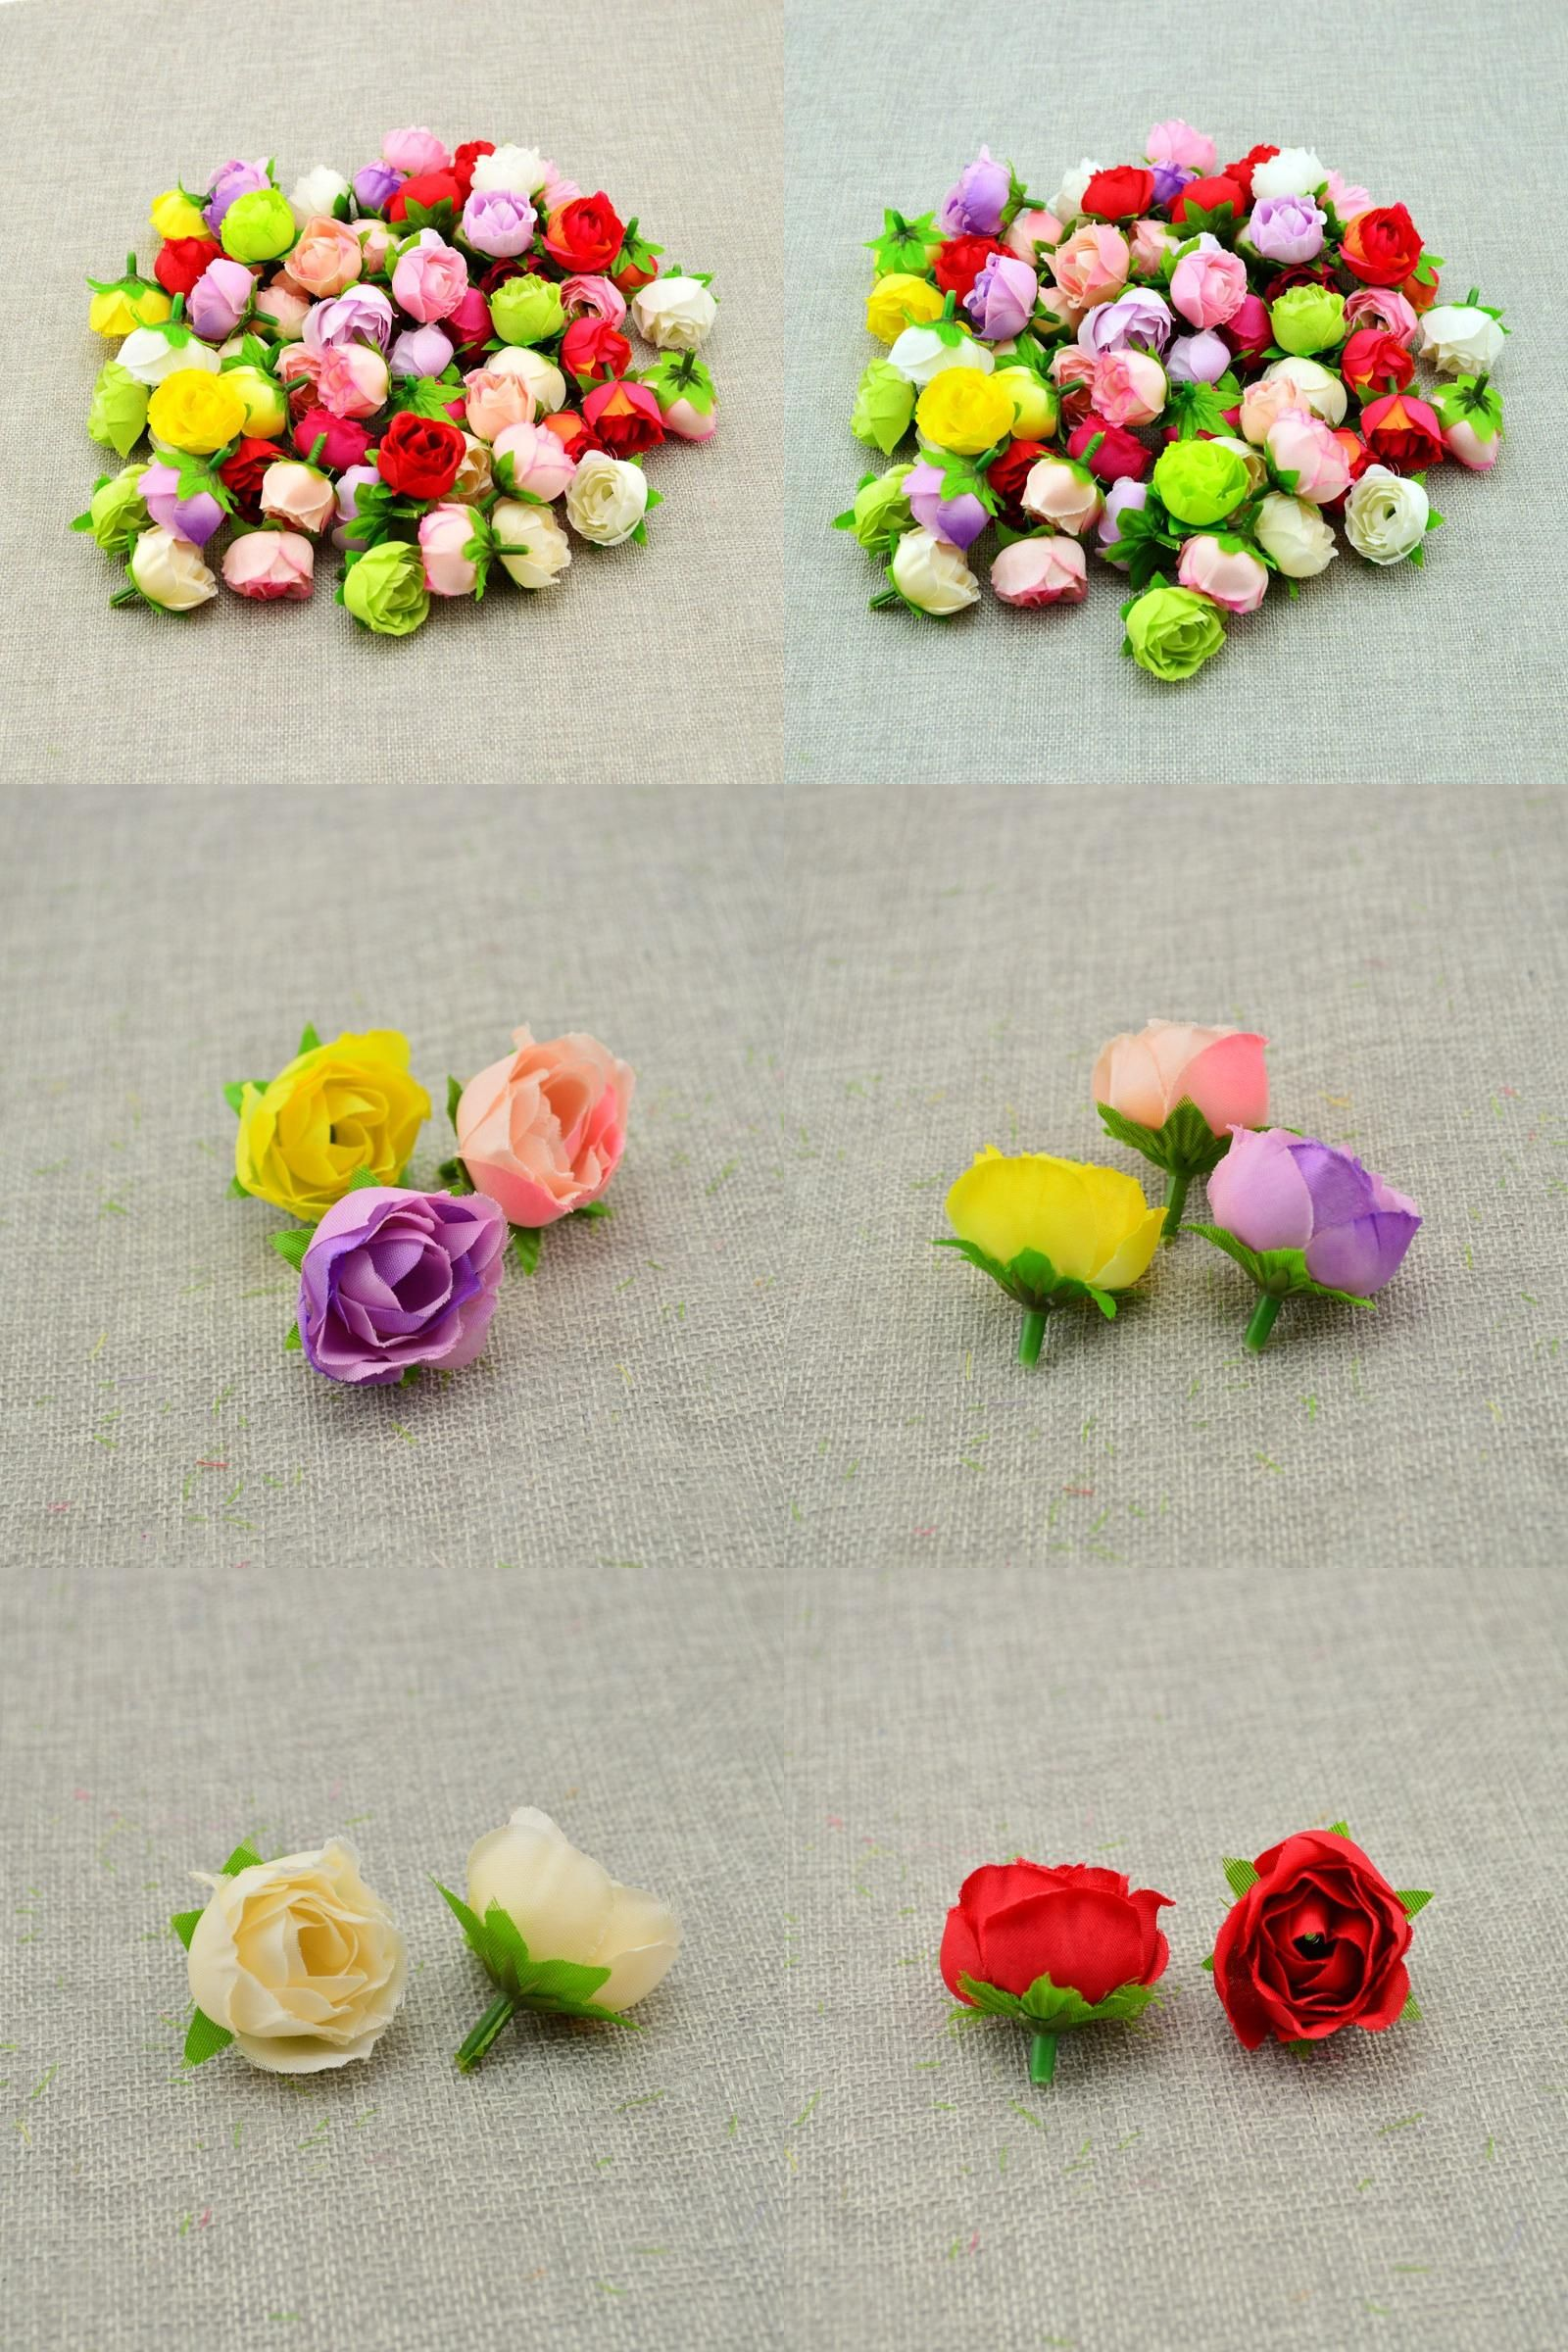 Visit to buy 30pcs cheap artificial flowers diy home decoration visit to buy 30pcs cheap artificial flowers diy home decoration wedding car party bridal izmirmasajfo